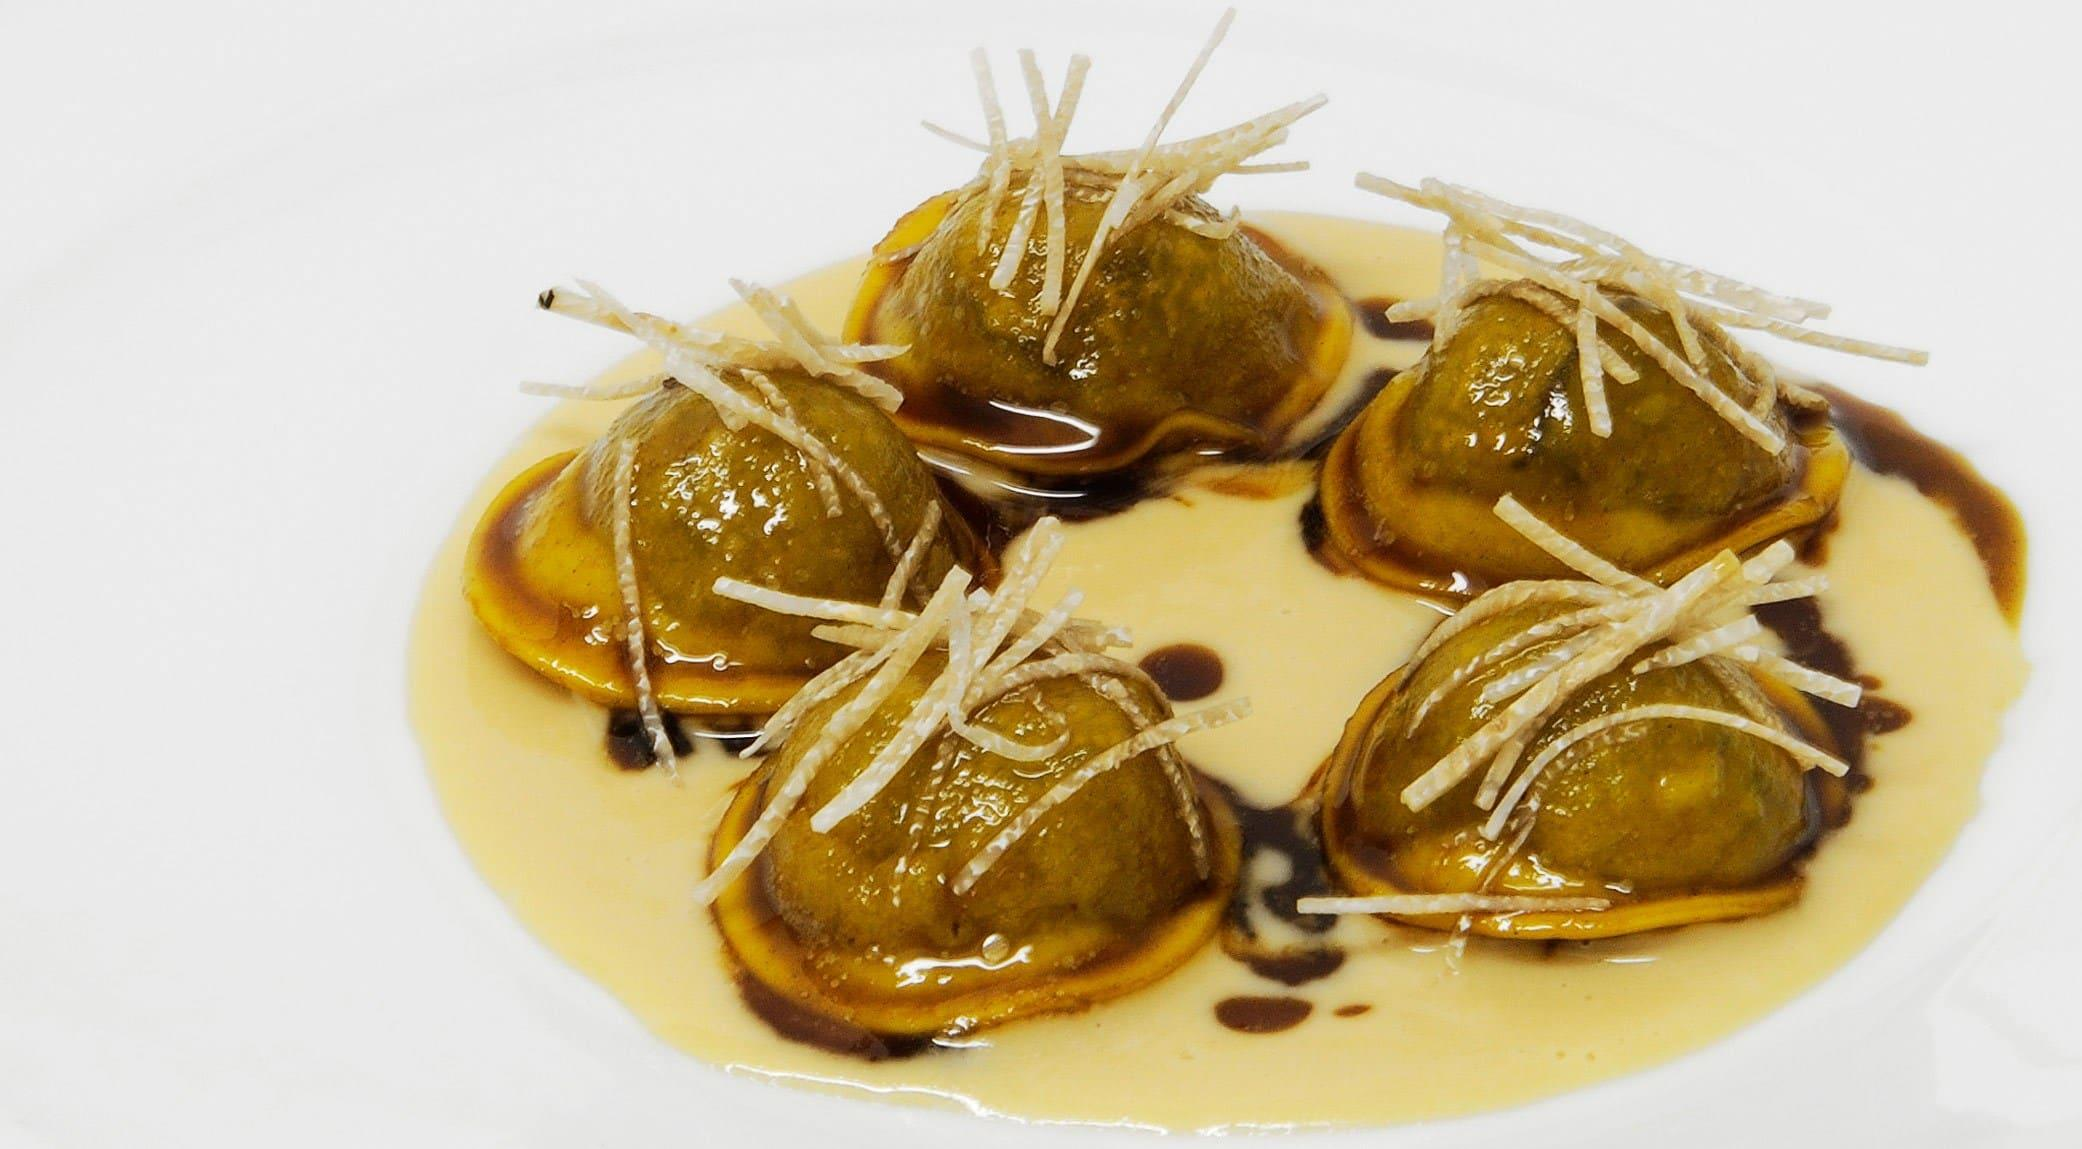 Massimo Bottura | Ravioli with leeks, foie gras and truffles